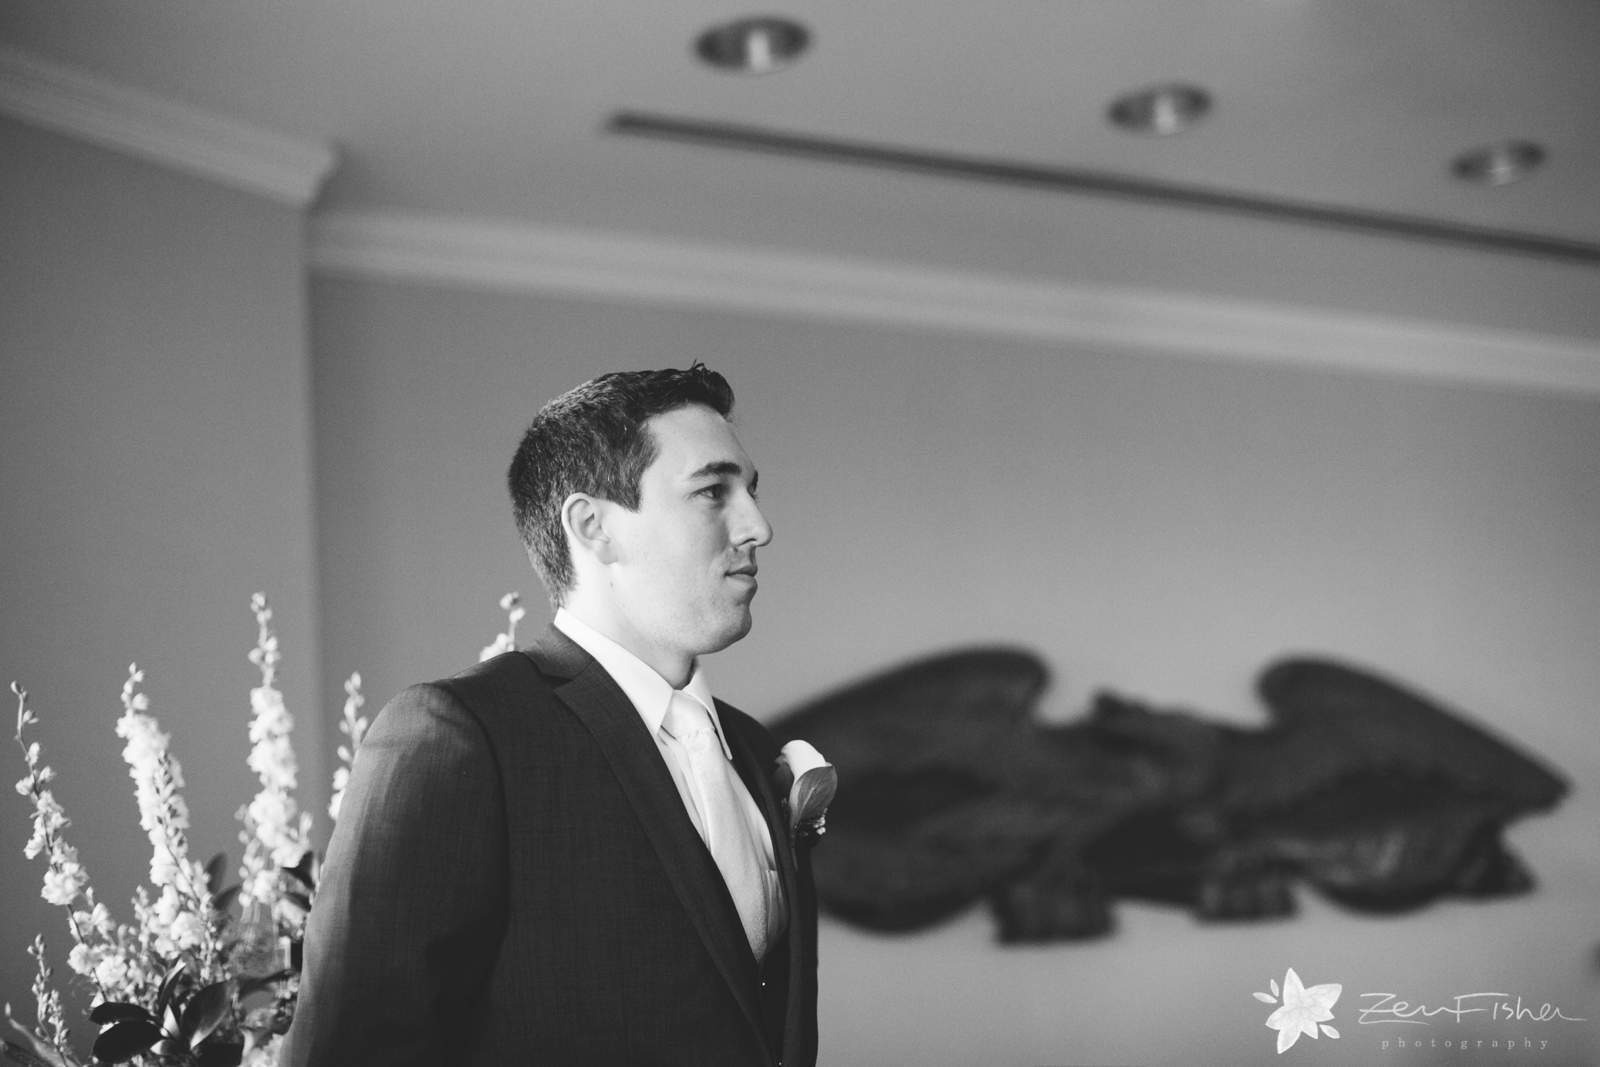 Groom stands at altar waiting in anticipation for bride to come down the aisle, black and white.